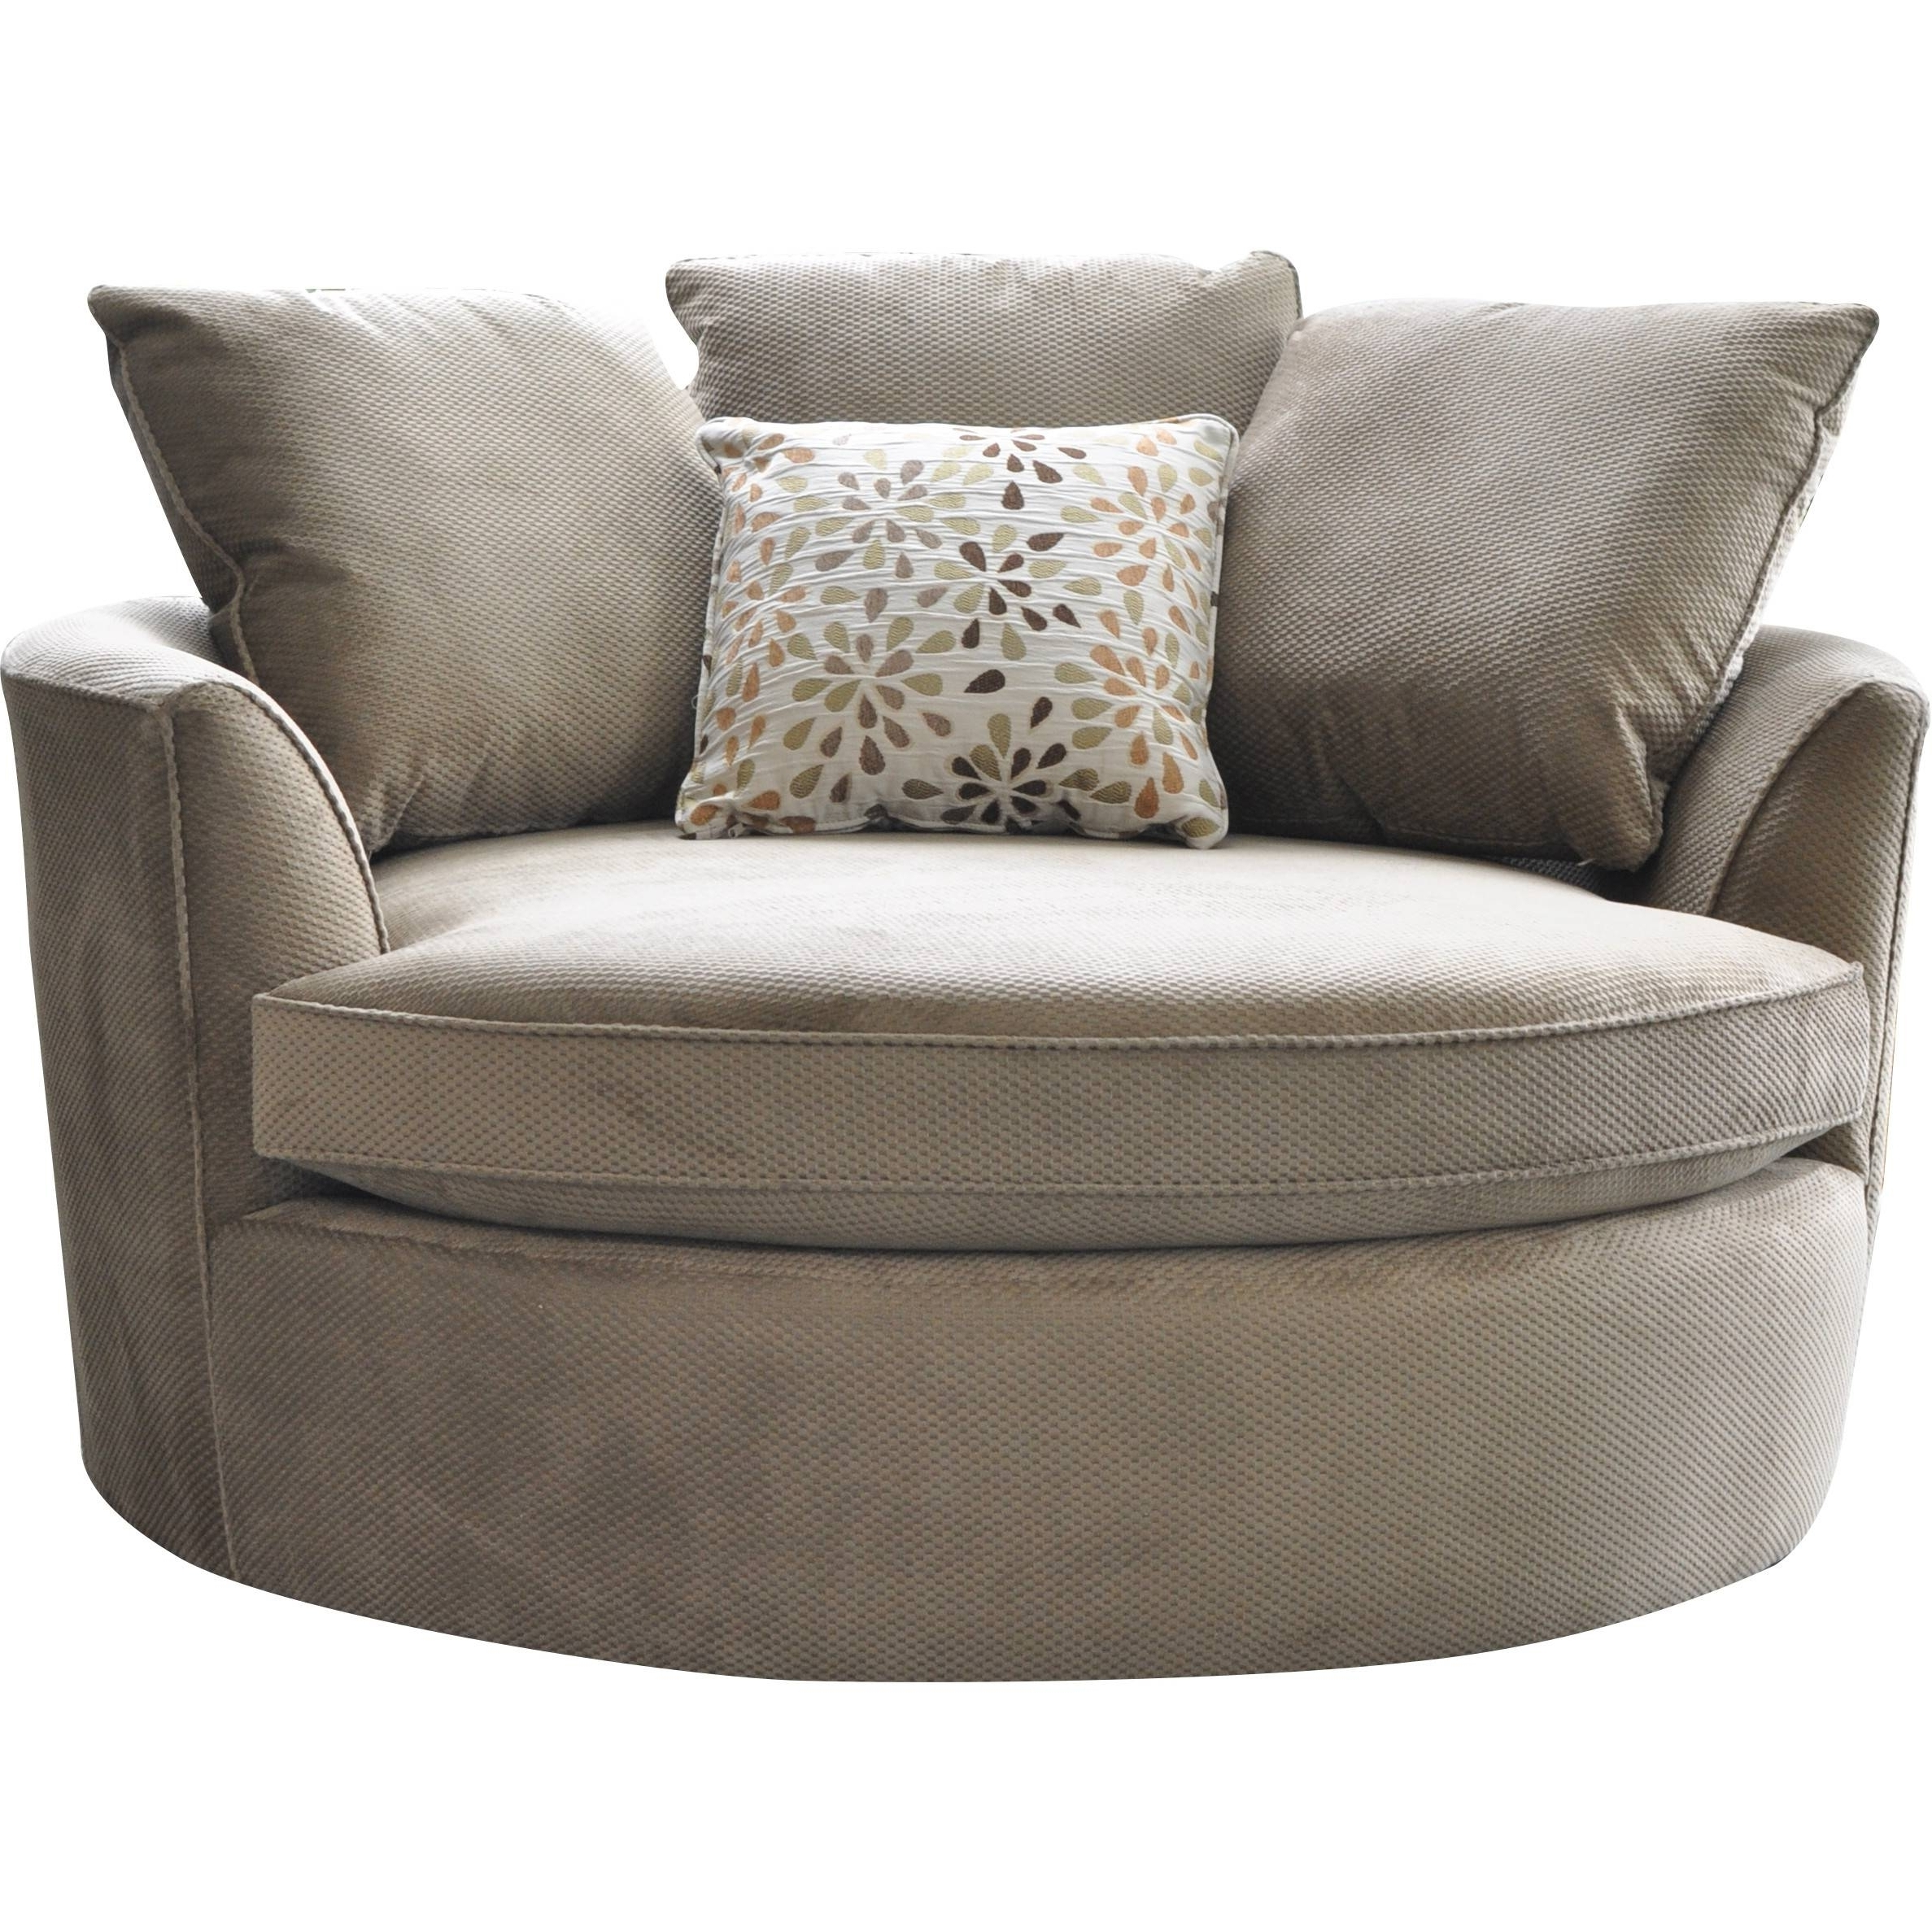 Most Recently Released Sofas : Violino Sofa Snuggle Seat Cuddler Furniture Sleeper Sofa Within Snuggle Sofas (View 11 of 20)